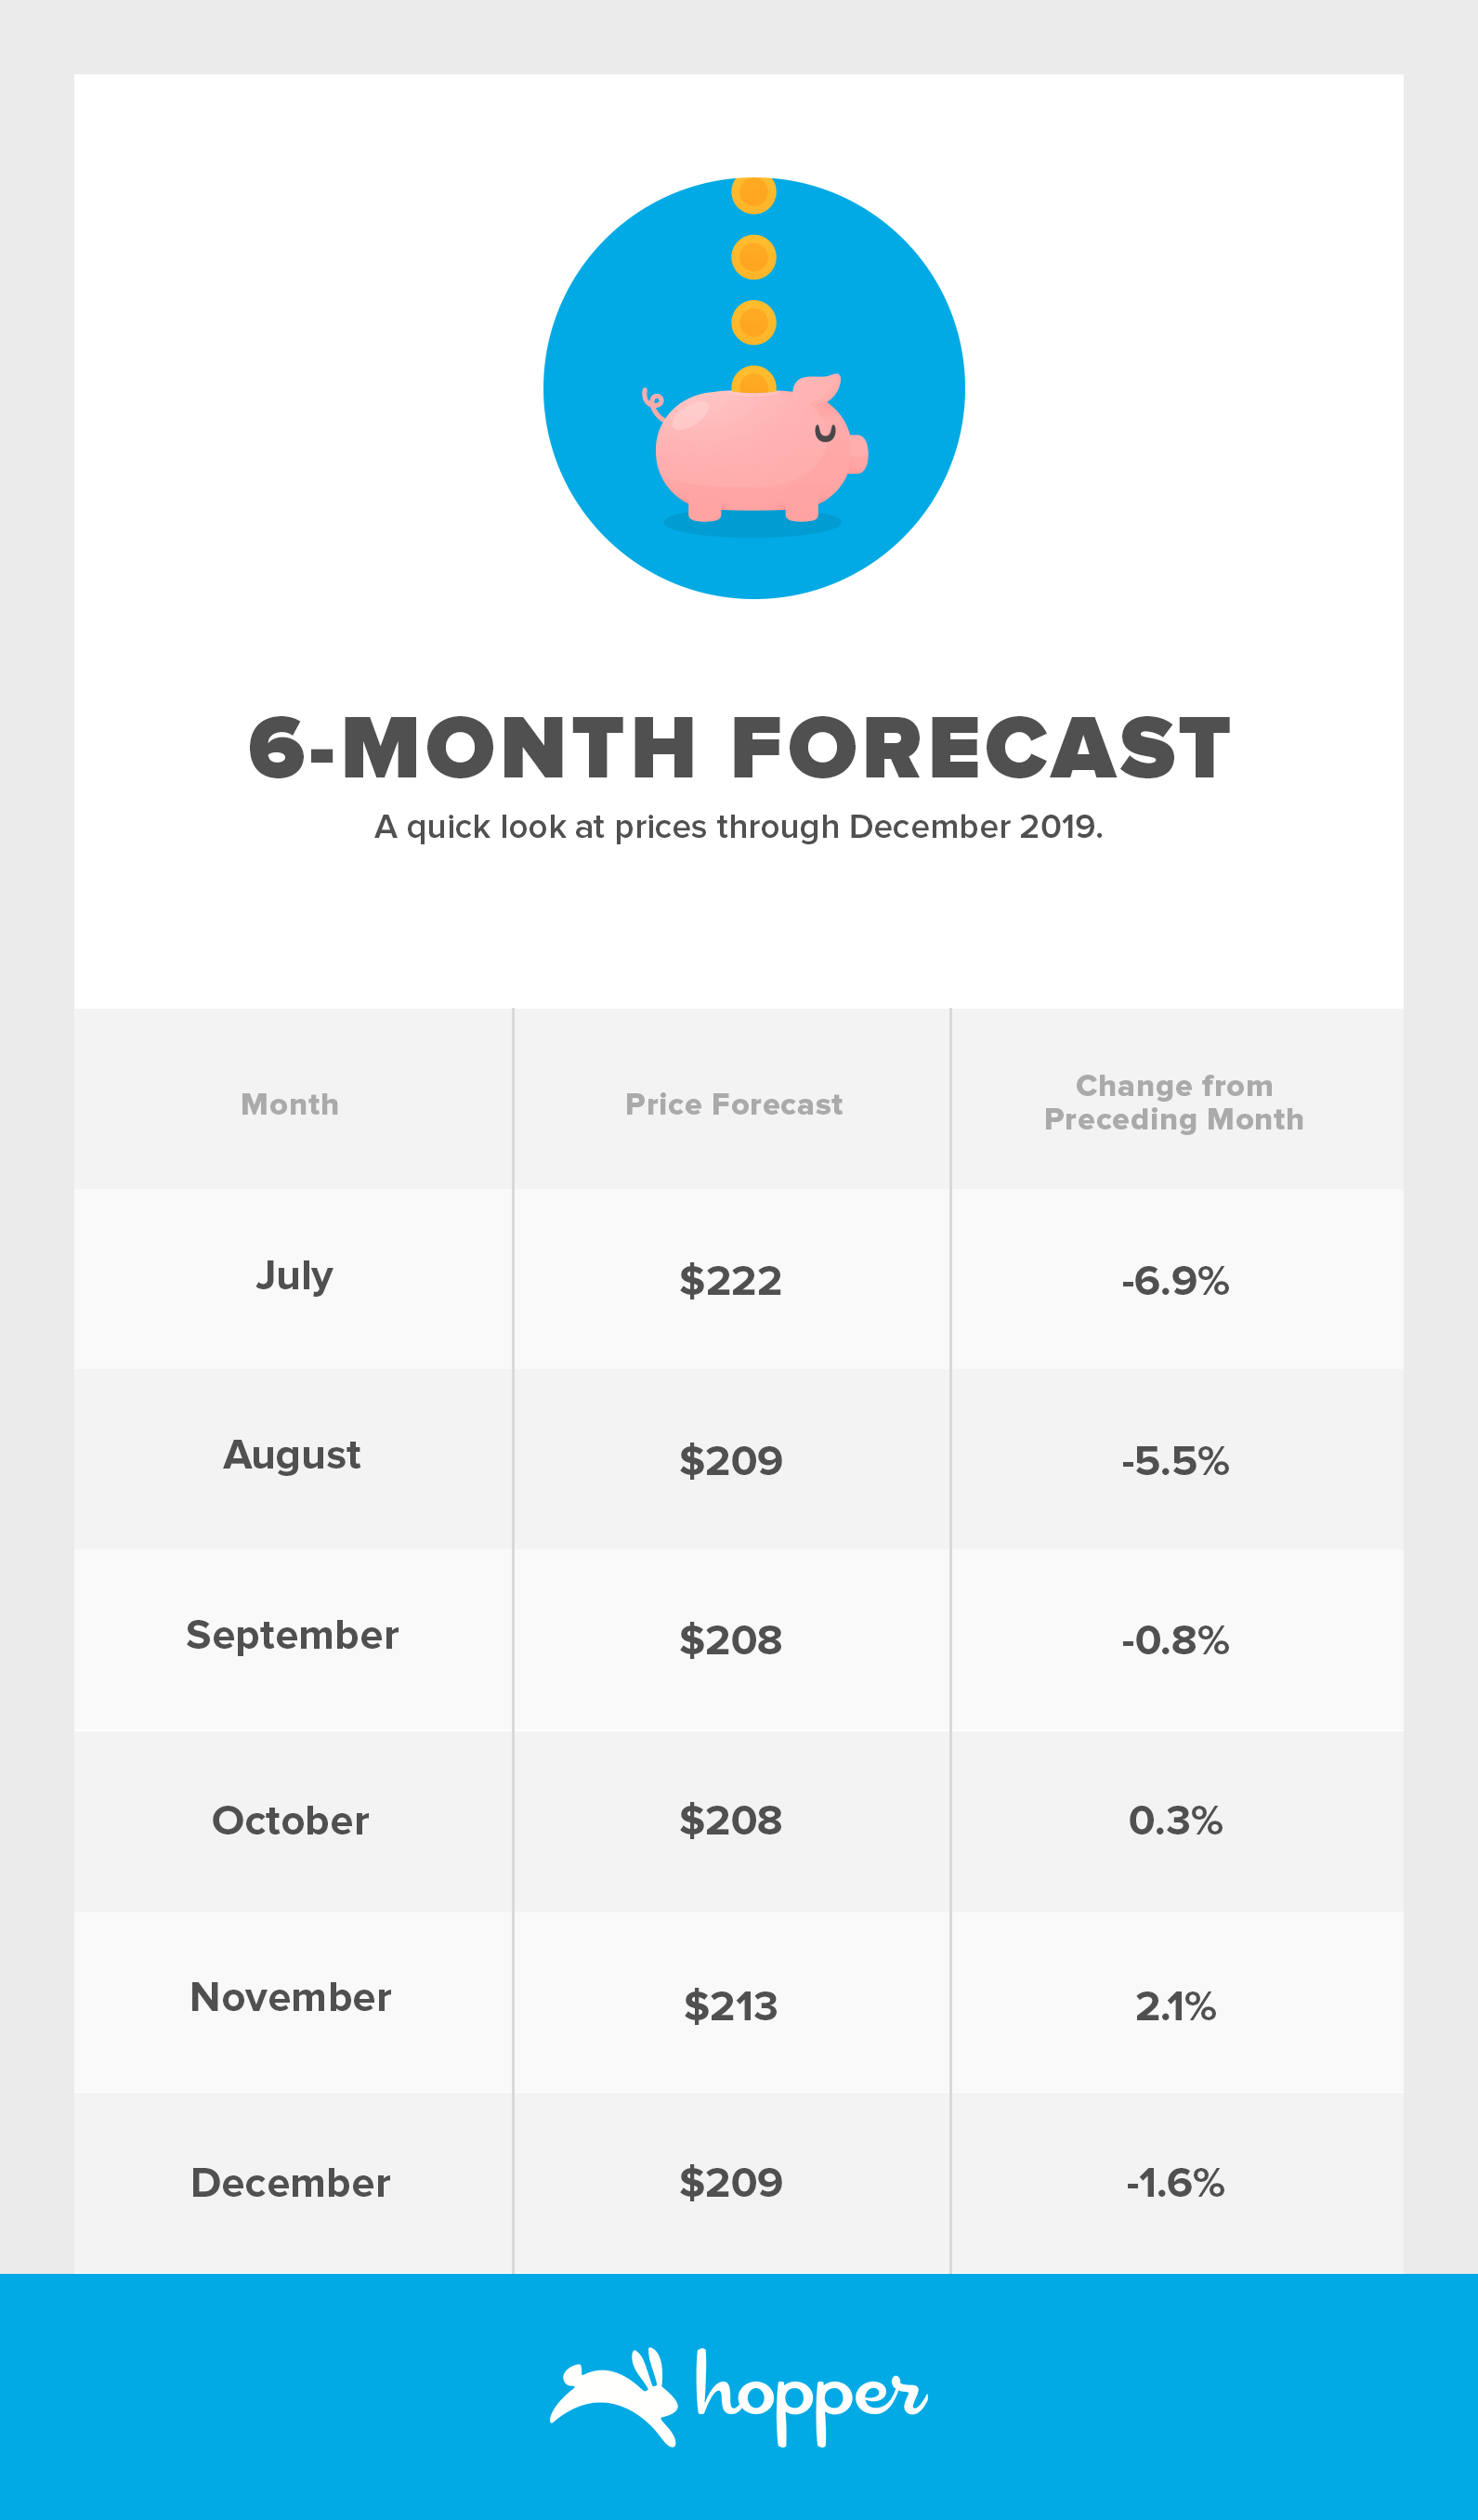 6-Month Forecast